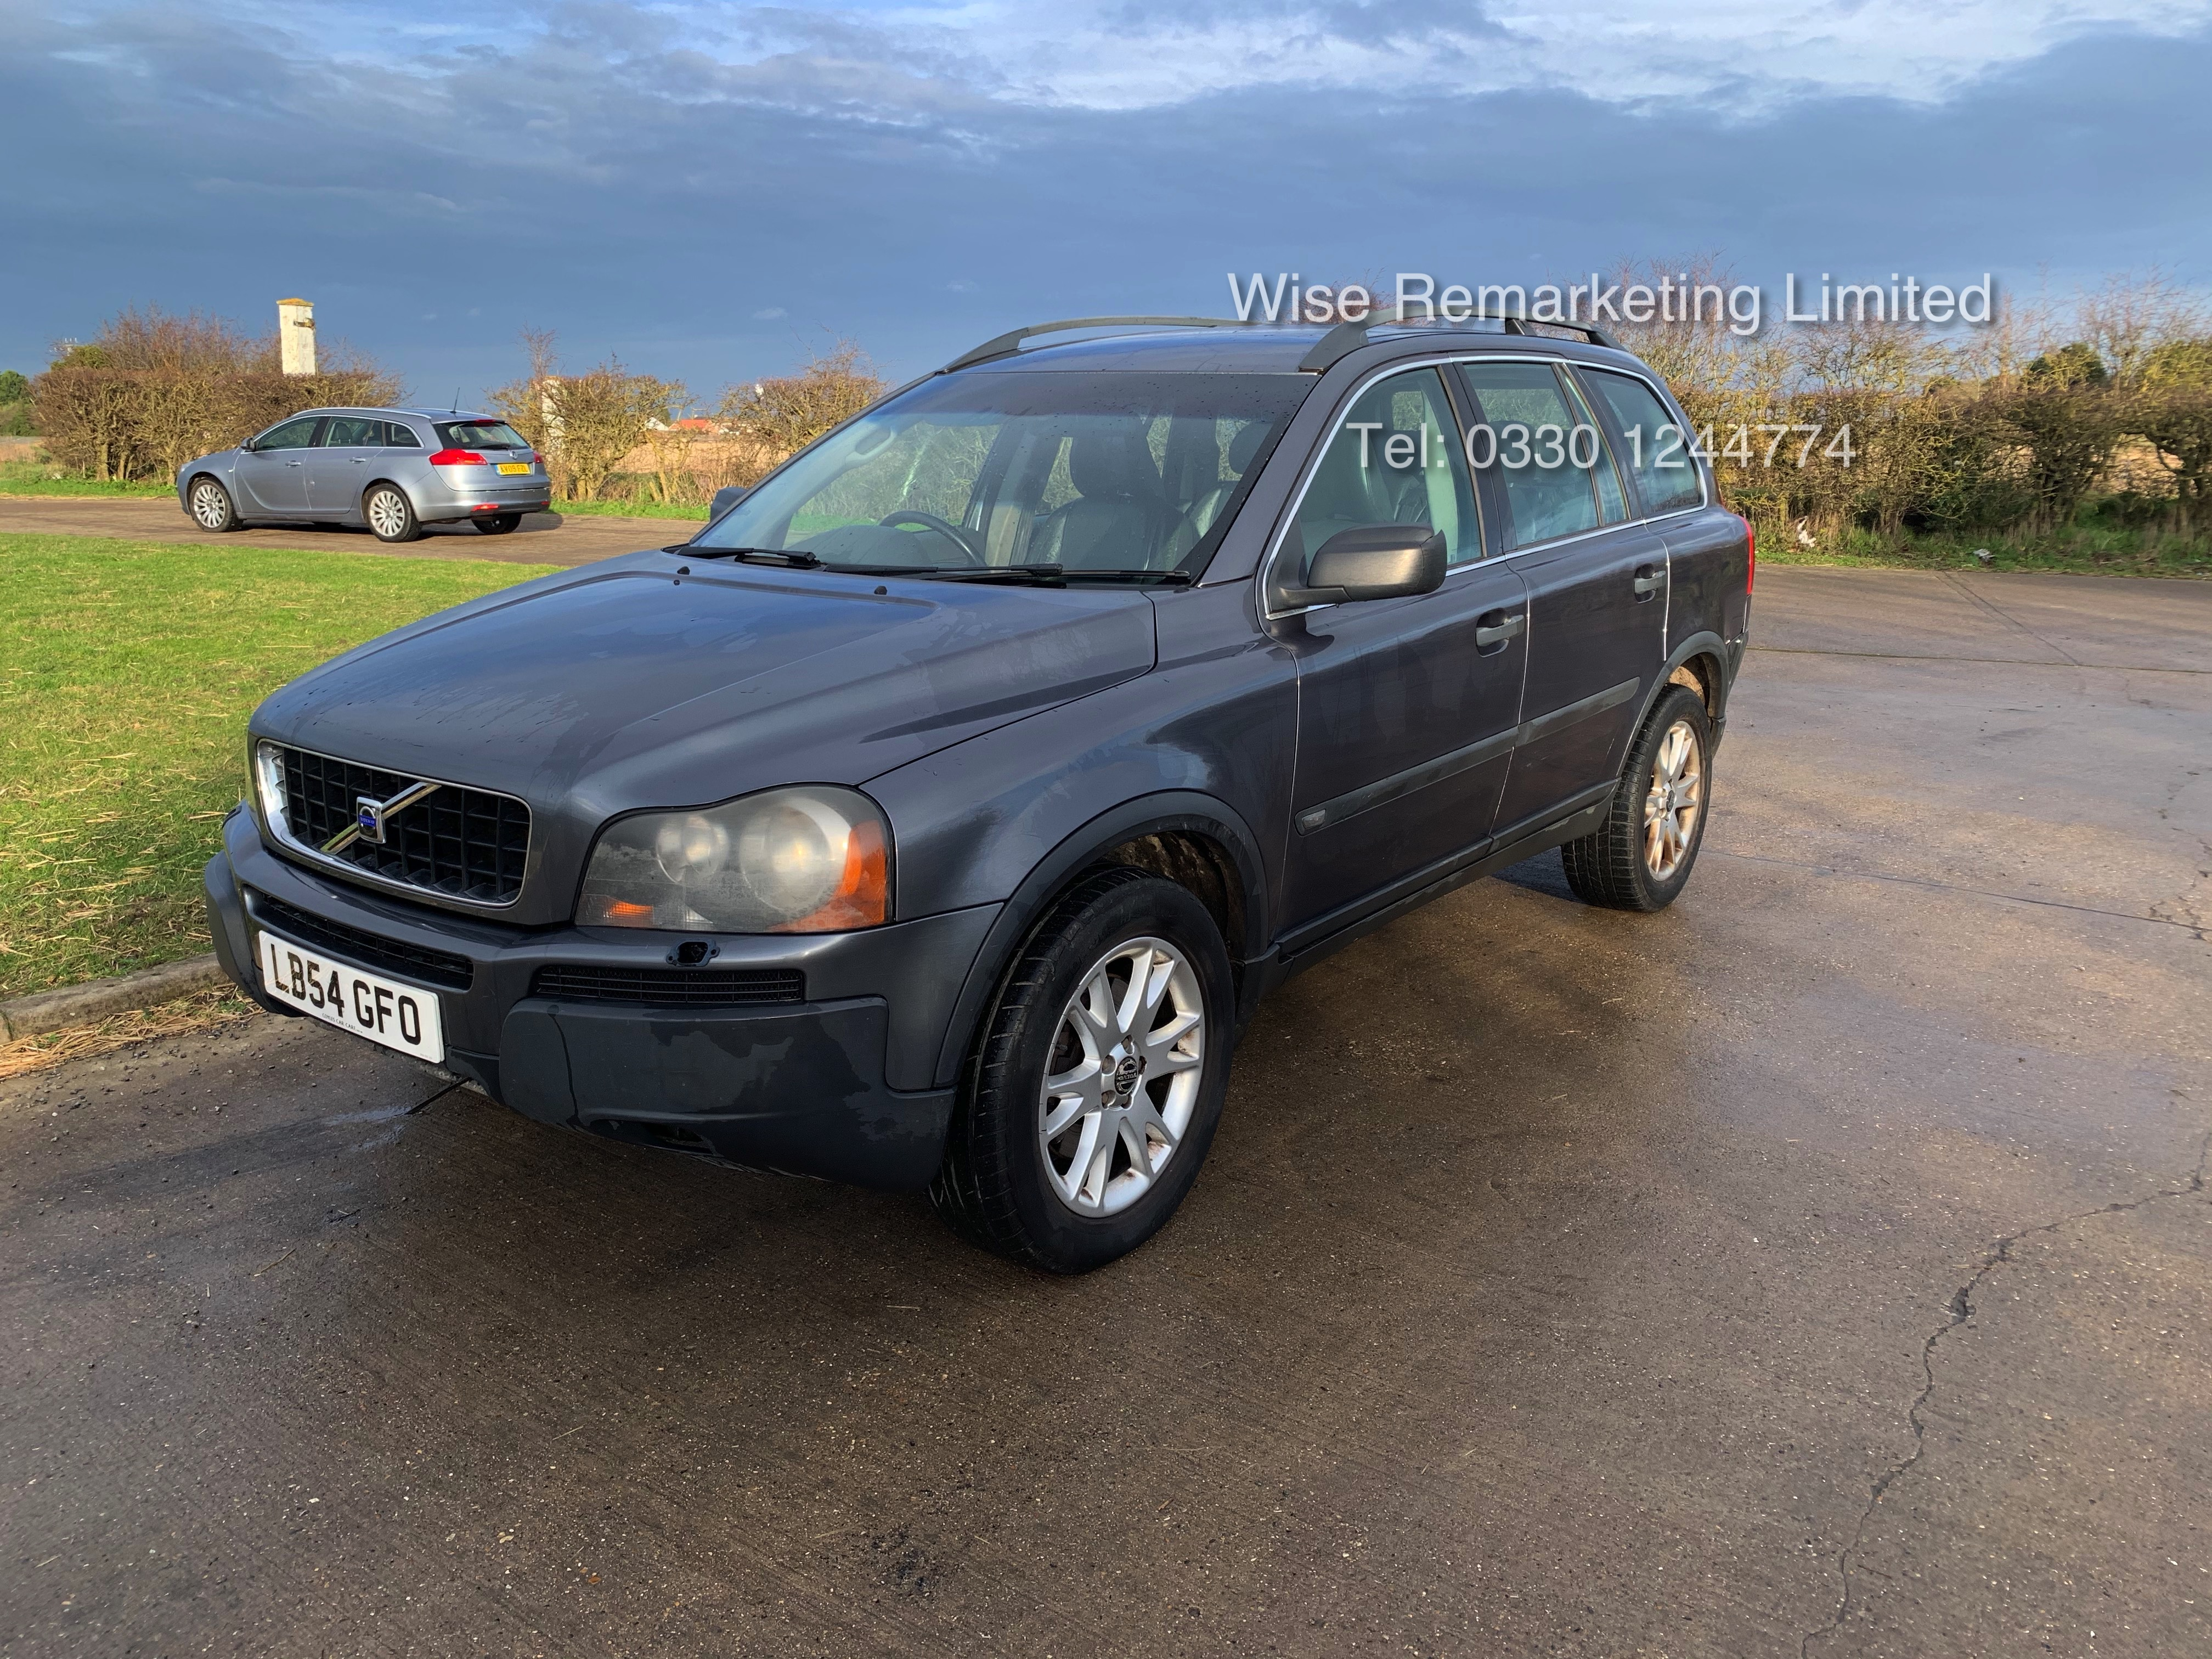 Volvo XC90 D5 2.4 Special Equipment Auto - 2005 Model - 7 Seater - Full Leather - - Image 2 of 21